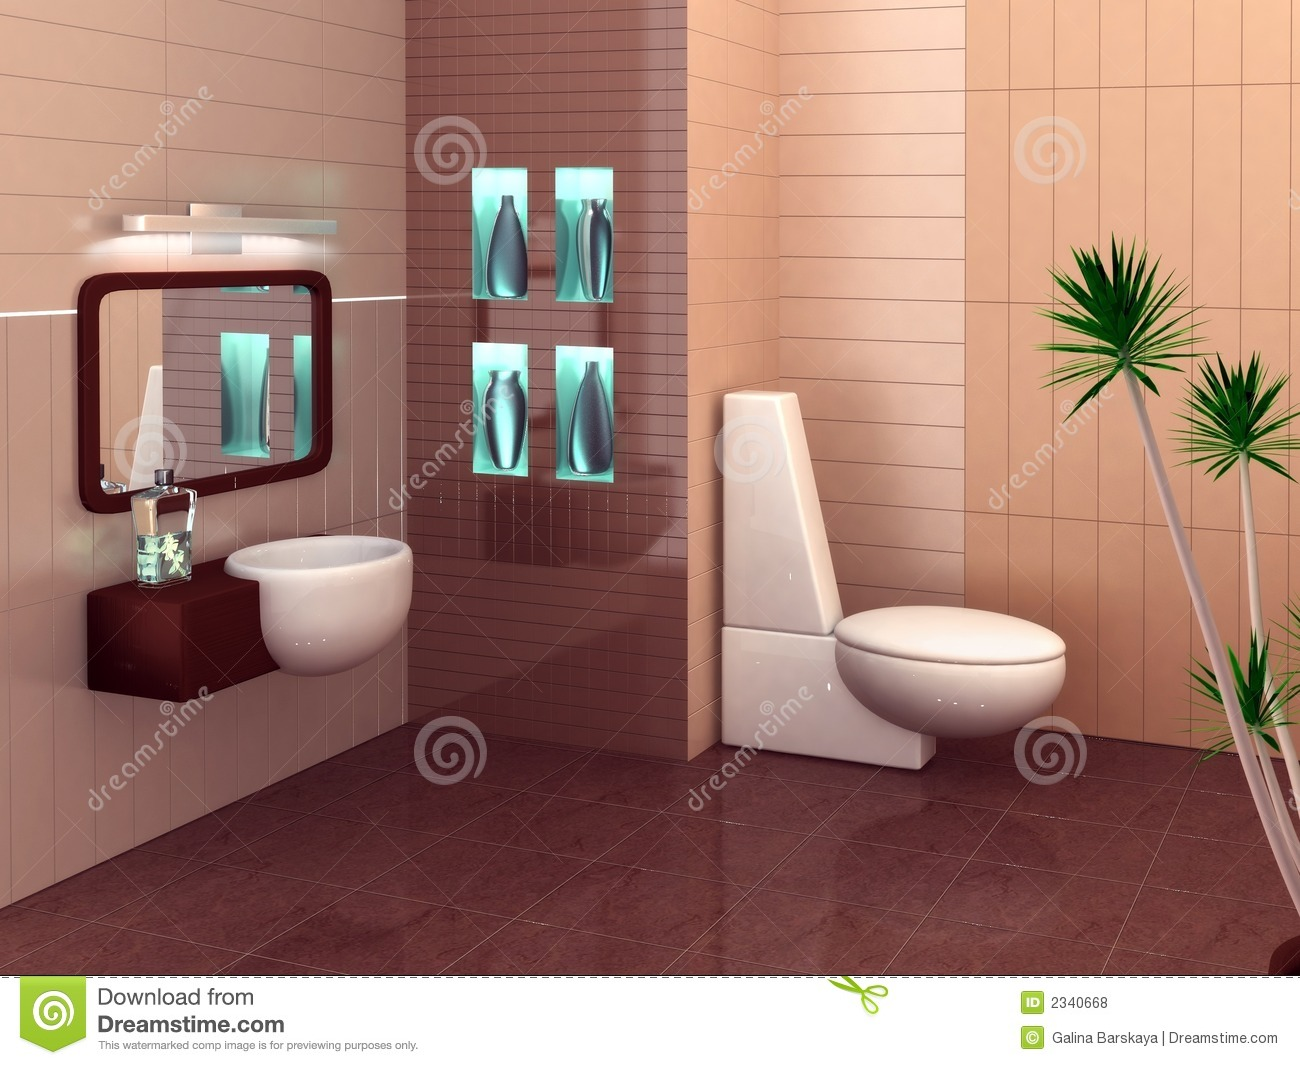 Salle de bains moderne photo stock image du contemporain for Salle bain moderne photo